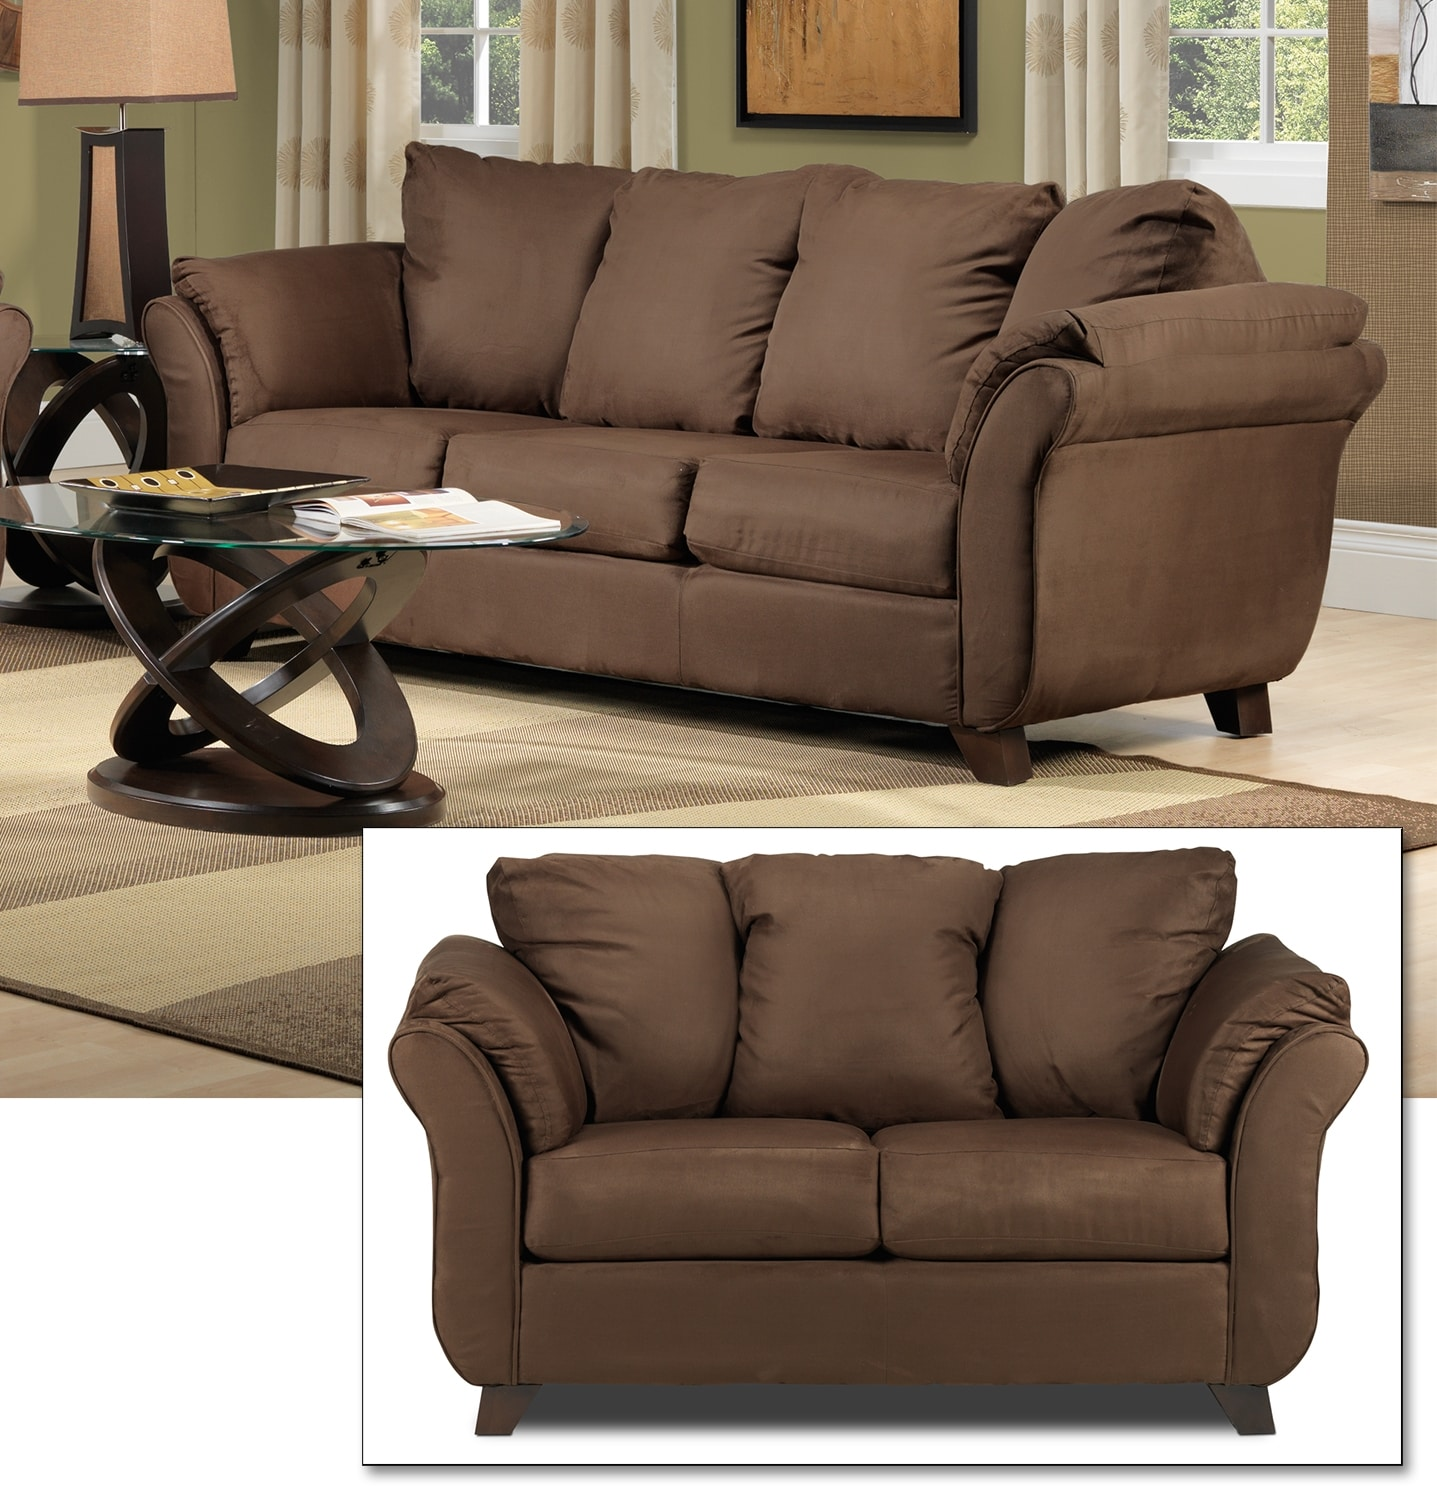 Collier 2 Pc. Living Room Package - Chocolate